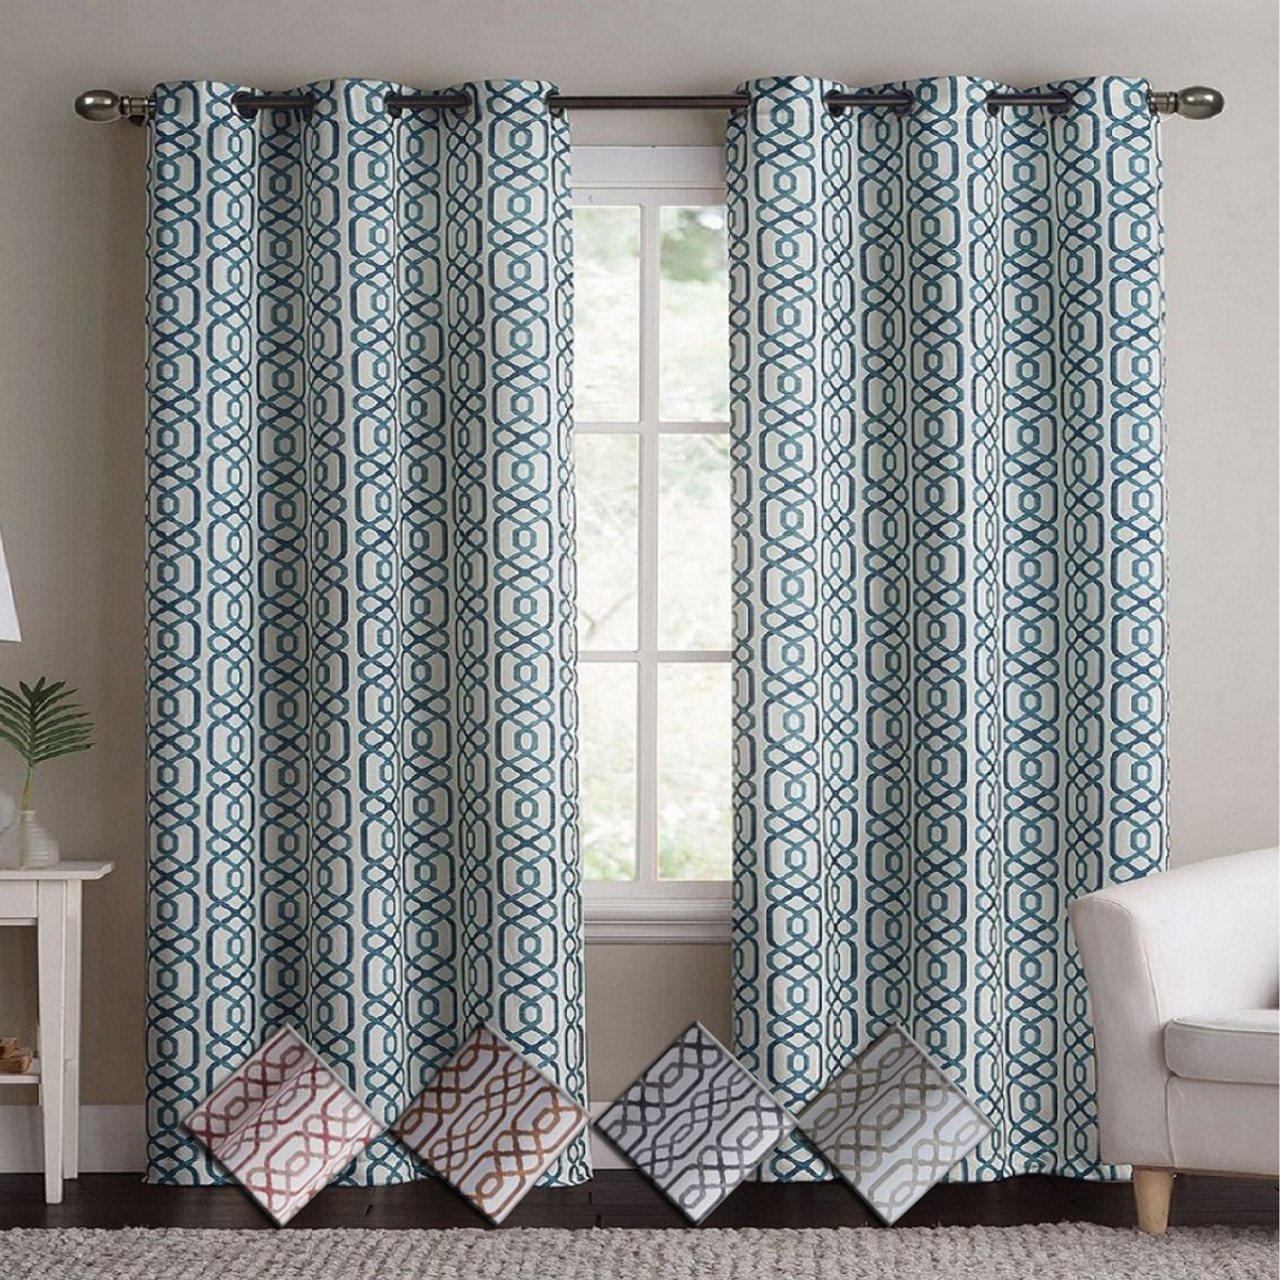 Alexander Blackout Weave Window Curtain Panels With Grommets Pair